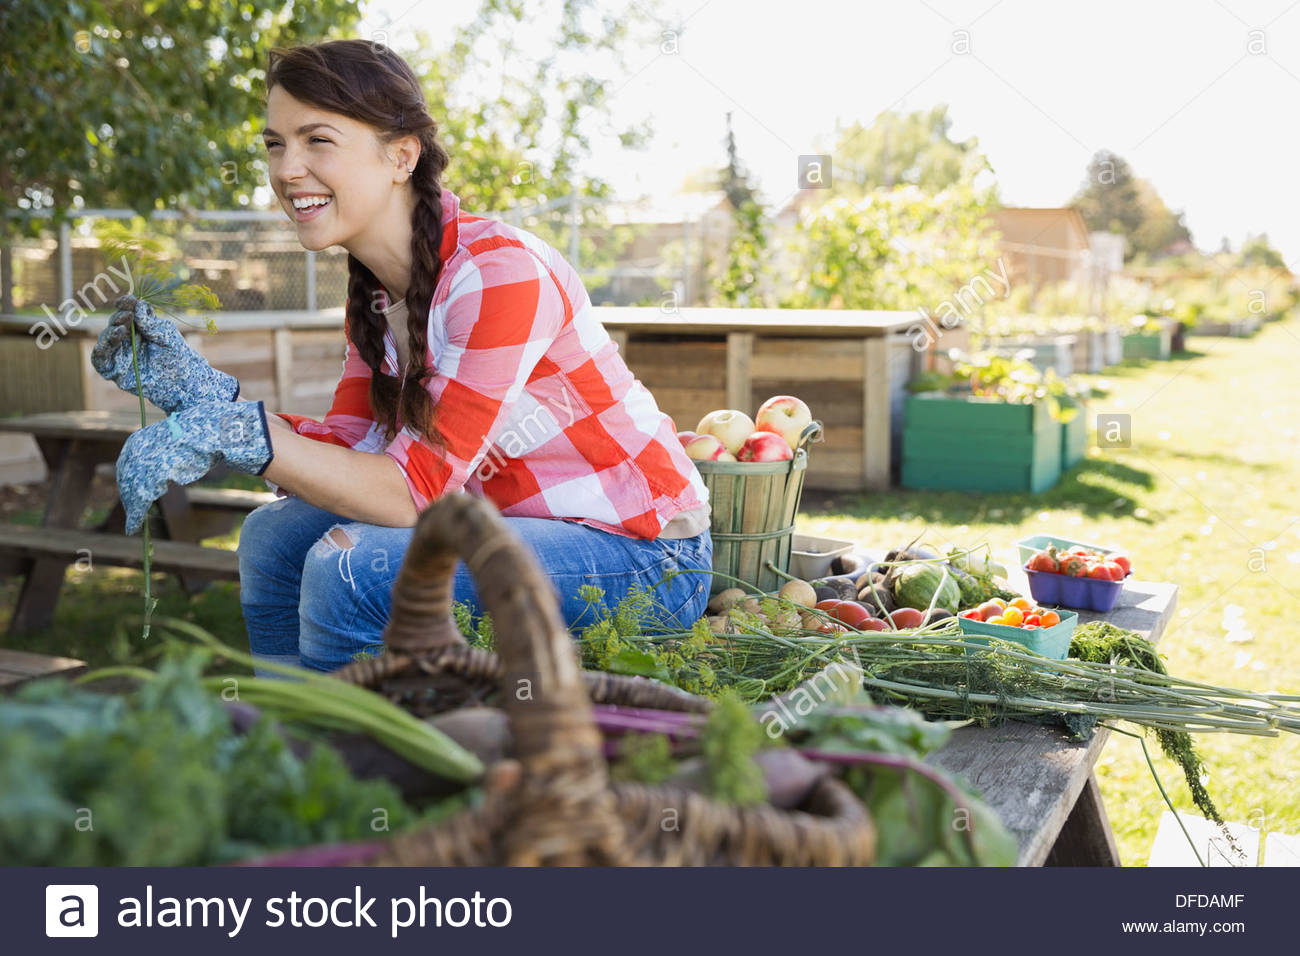 Cheerful woman sitting in community garden - Stock Image